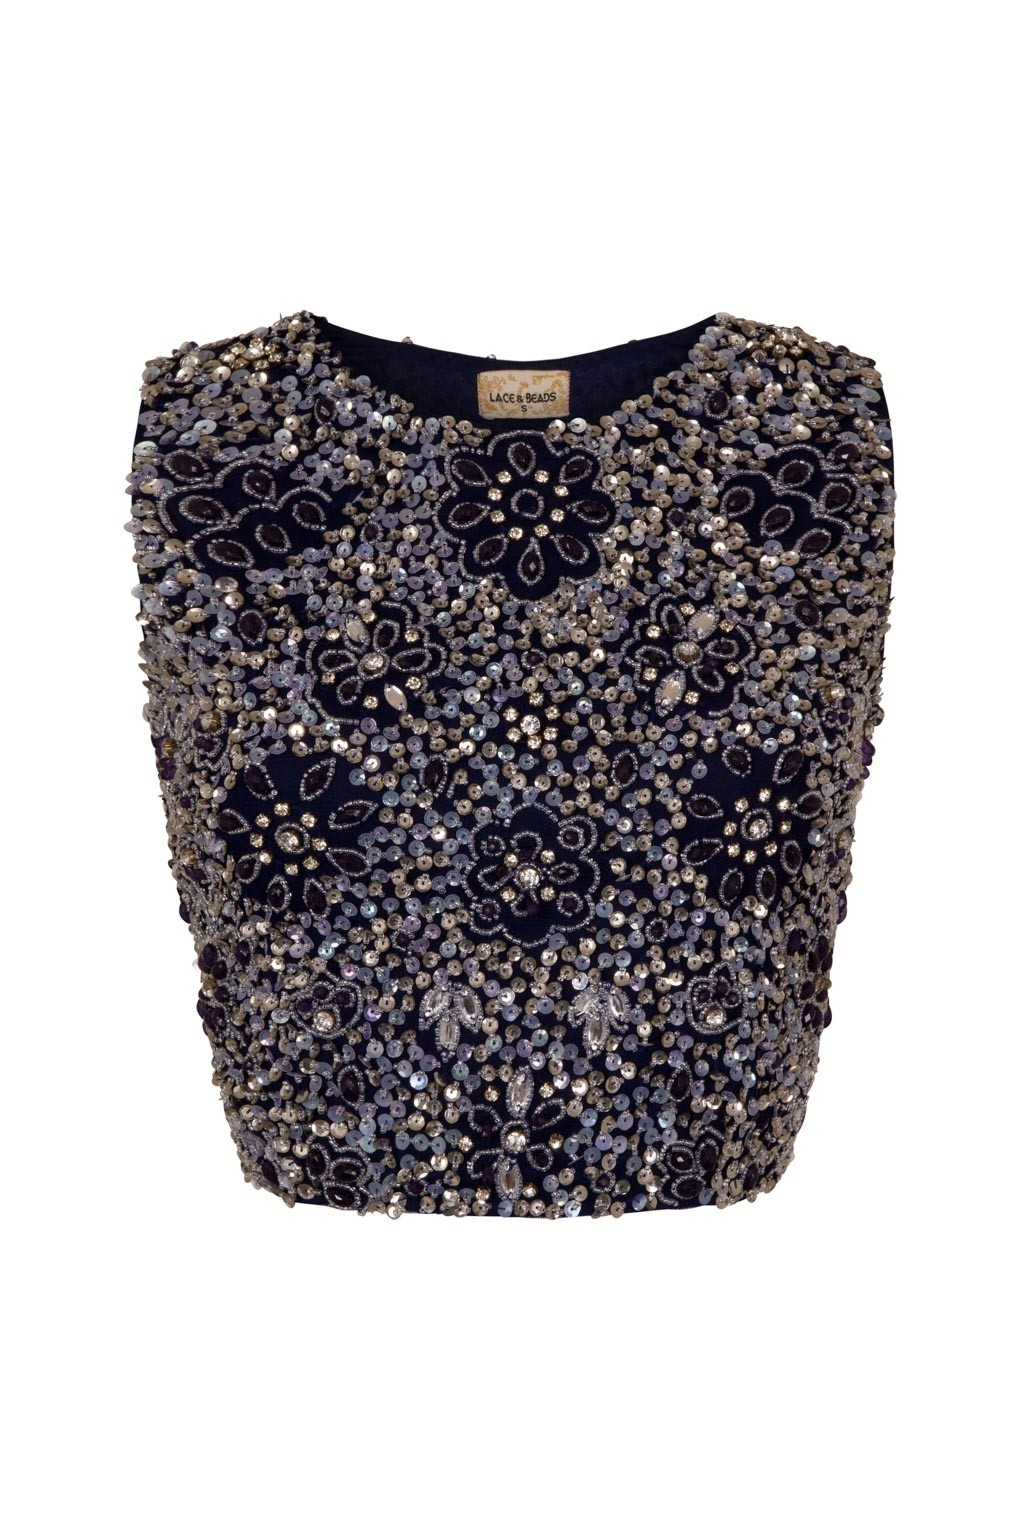 2cccfd50ff967f LACE   BEADS JUPITER NAVY SEQUIN TOP